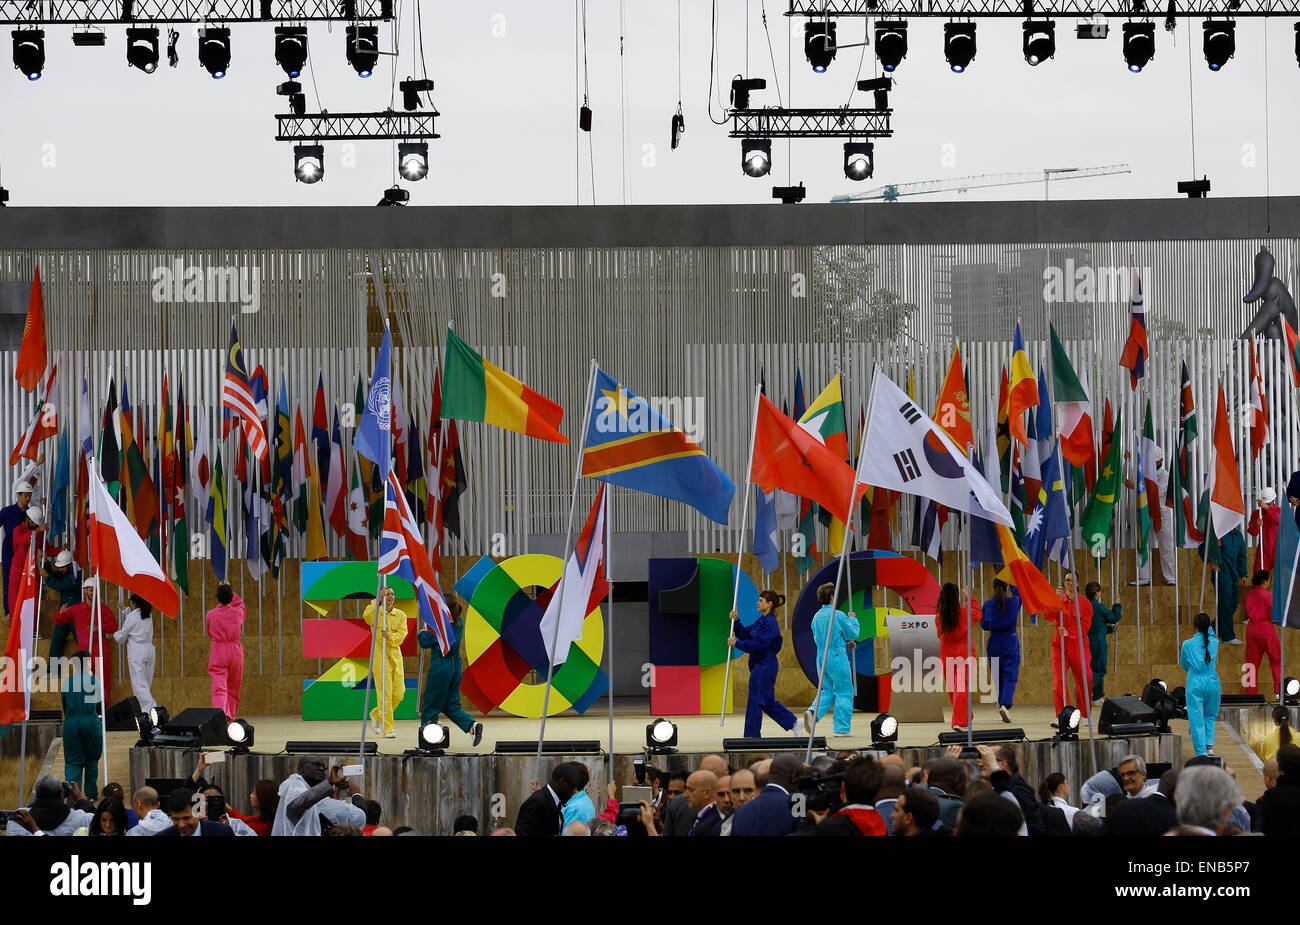 Milan, Italy. 1st May, 2015. Volunteers bring flags of countries and organizations to main stage at the opening - Stock Image